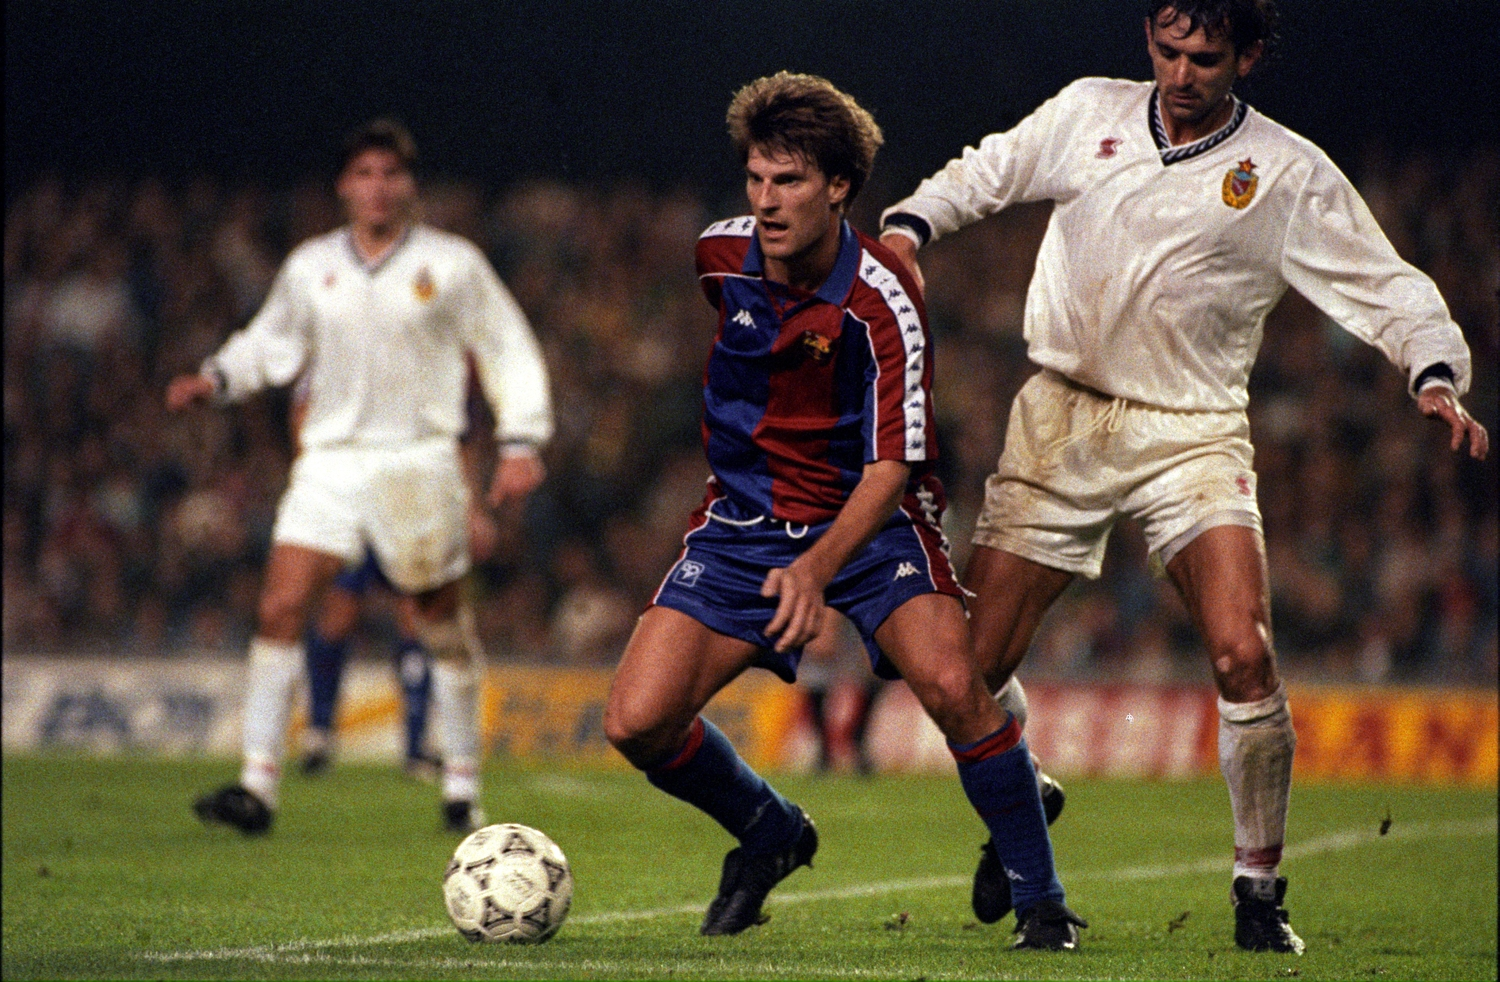 Laudrup The secrets behind coach Cruyff s success